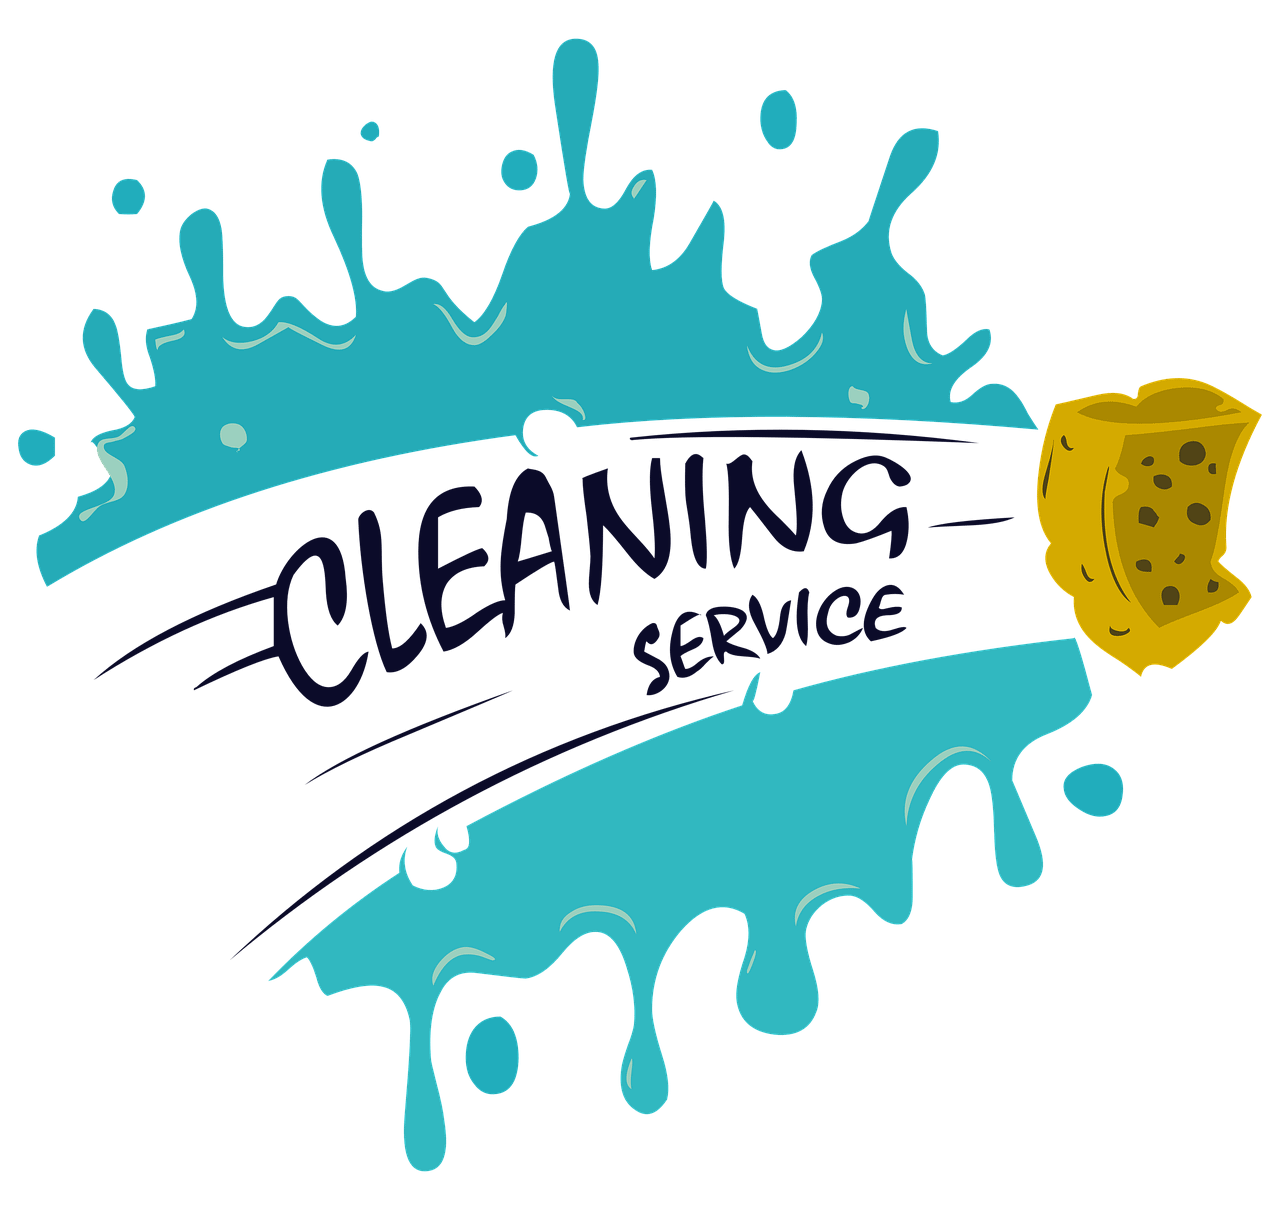 cleaning service, cleaning, services